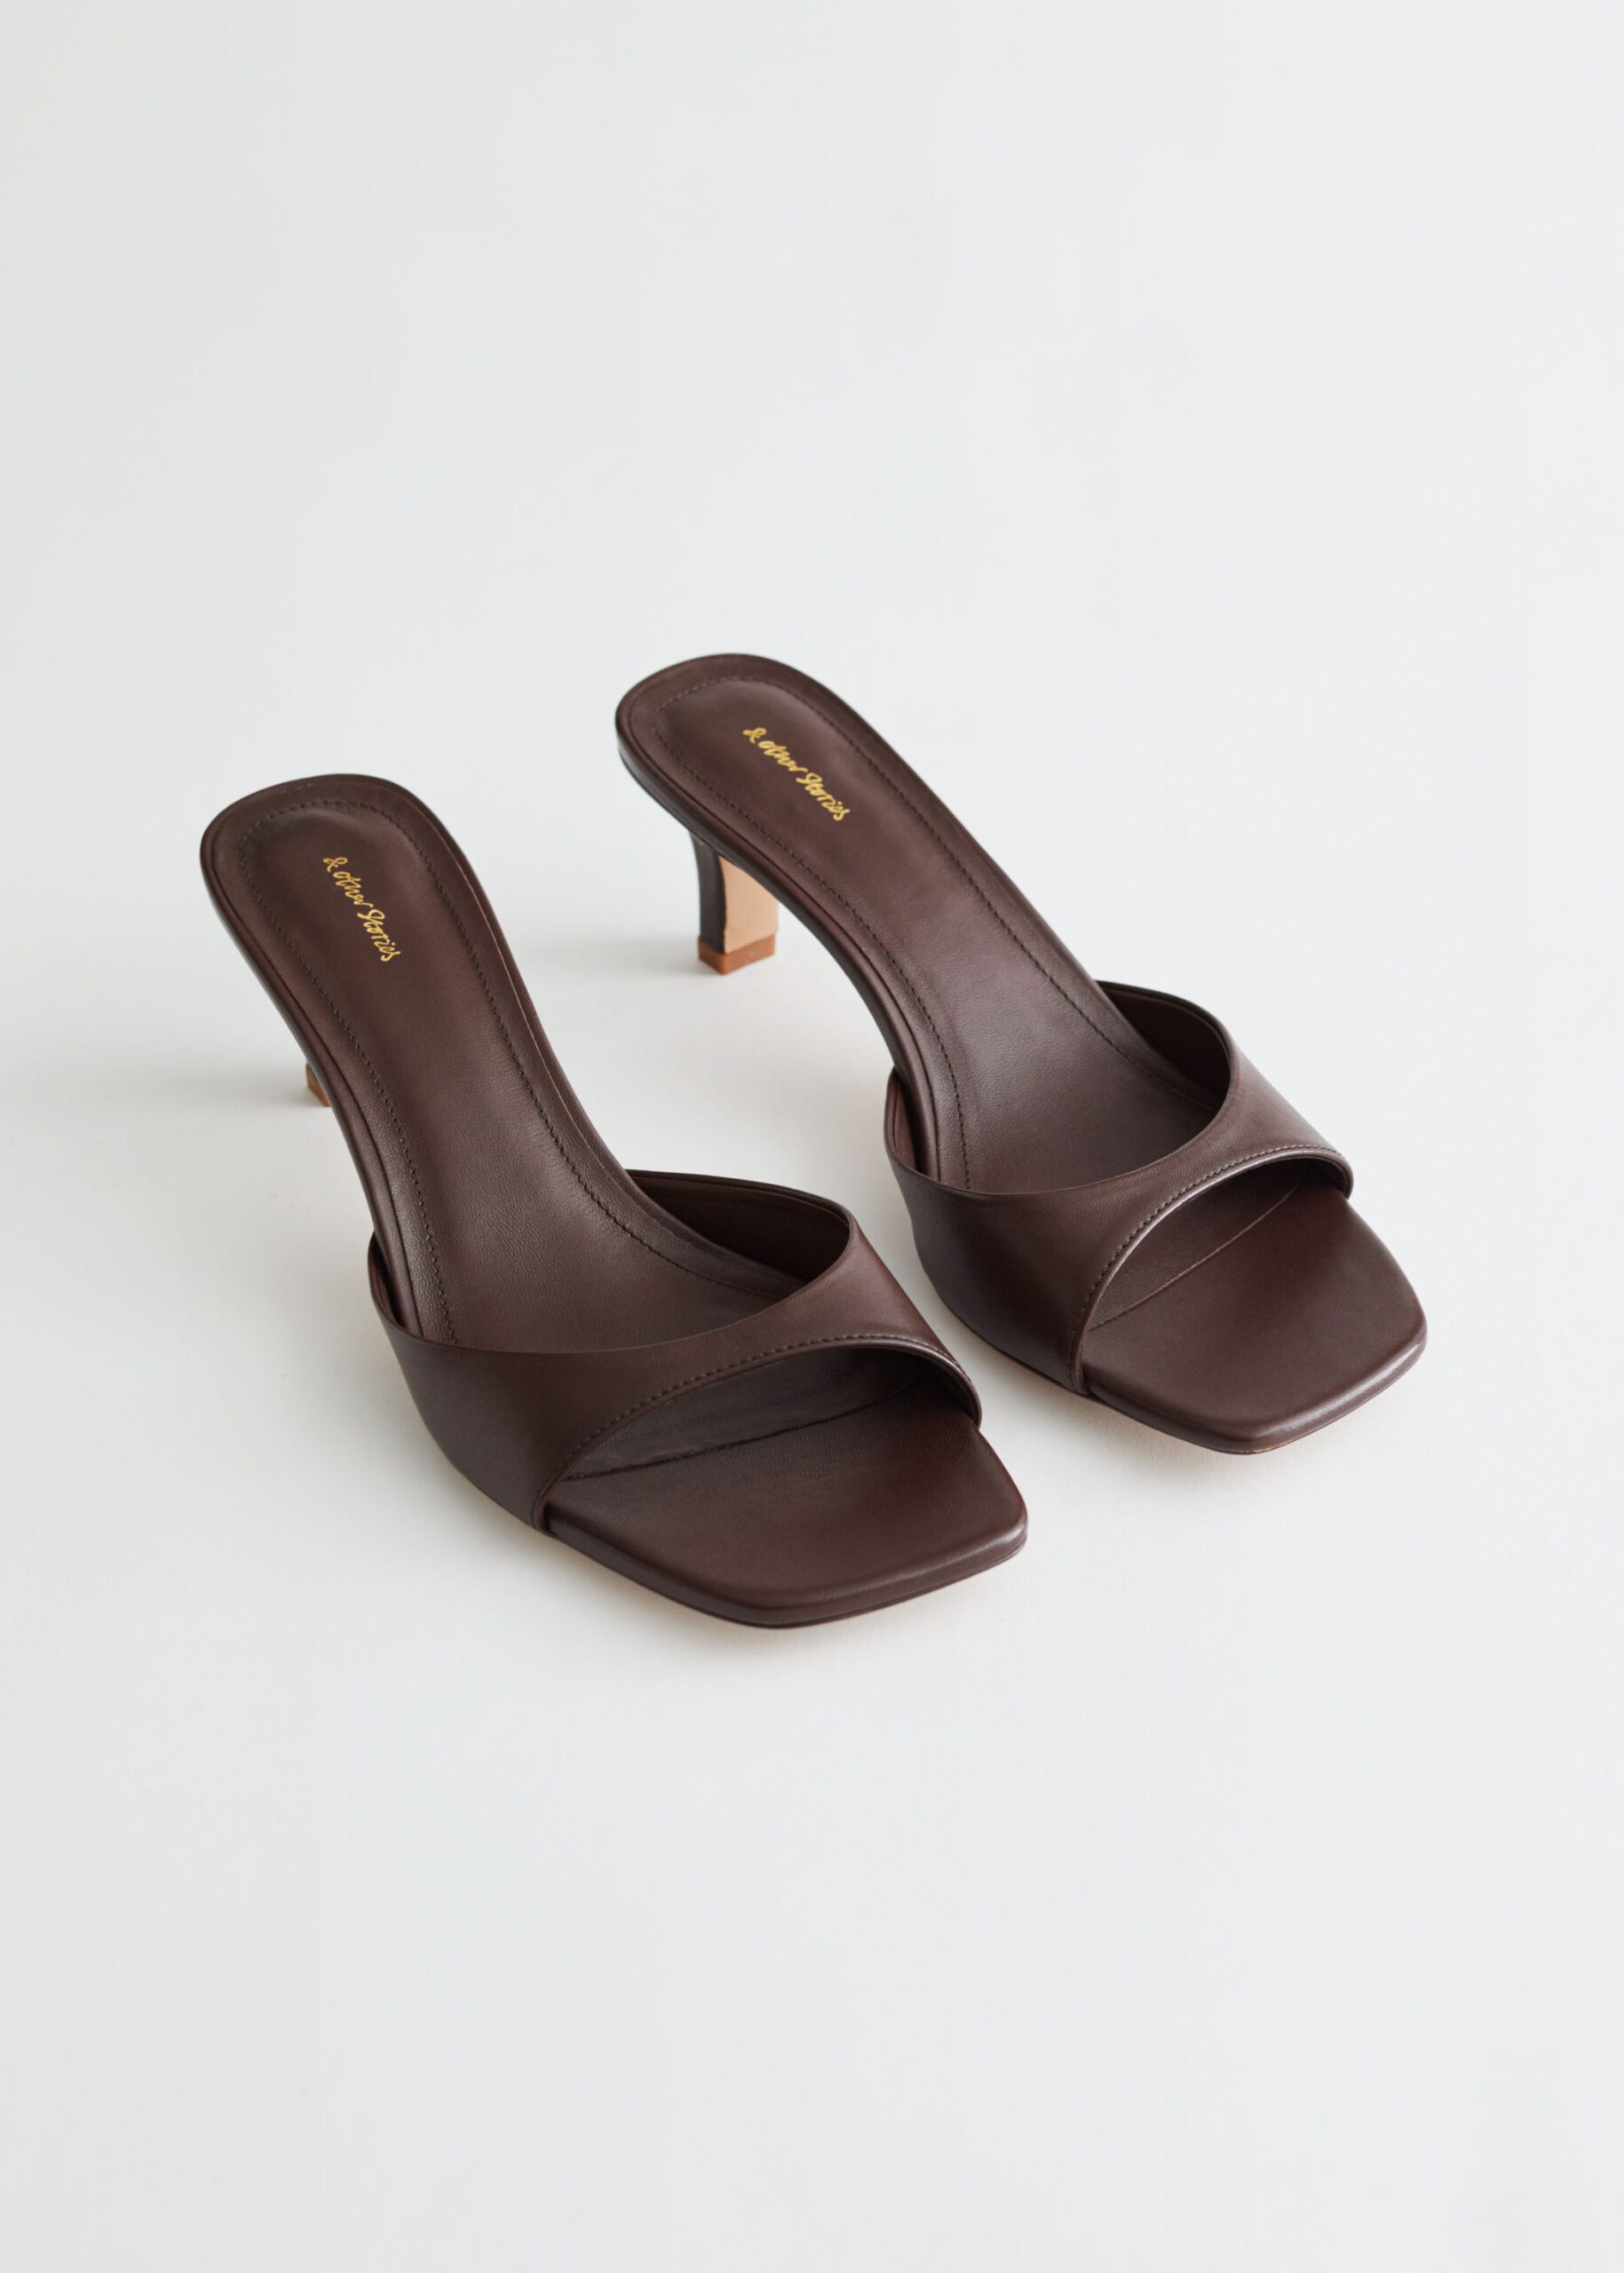 Flared Heel Leather Mules $129